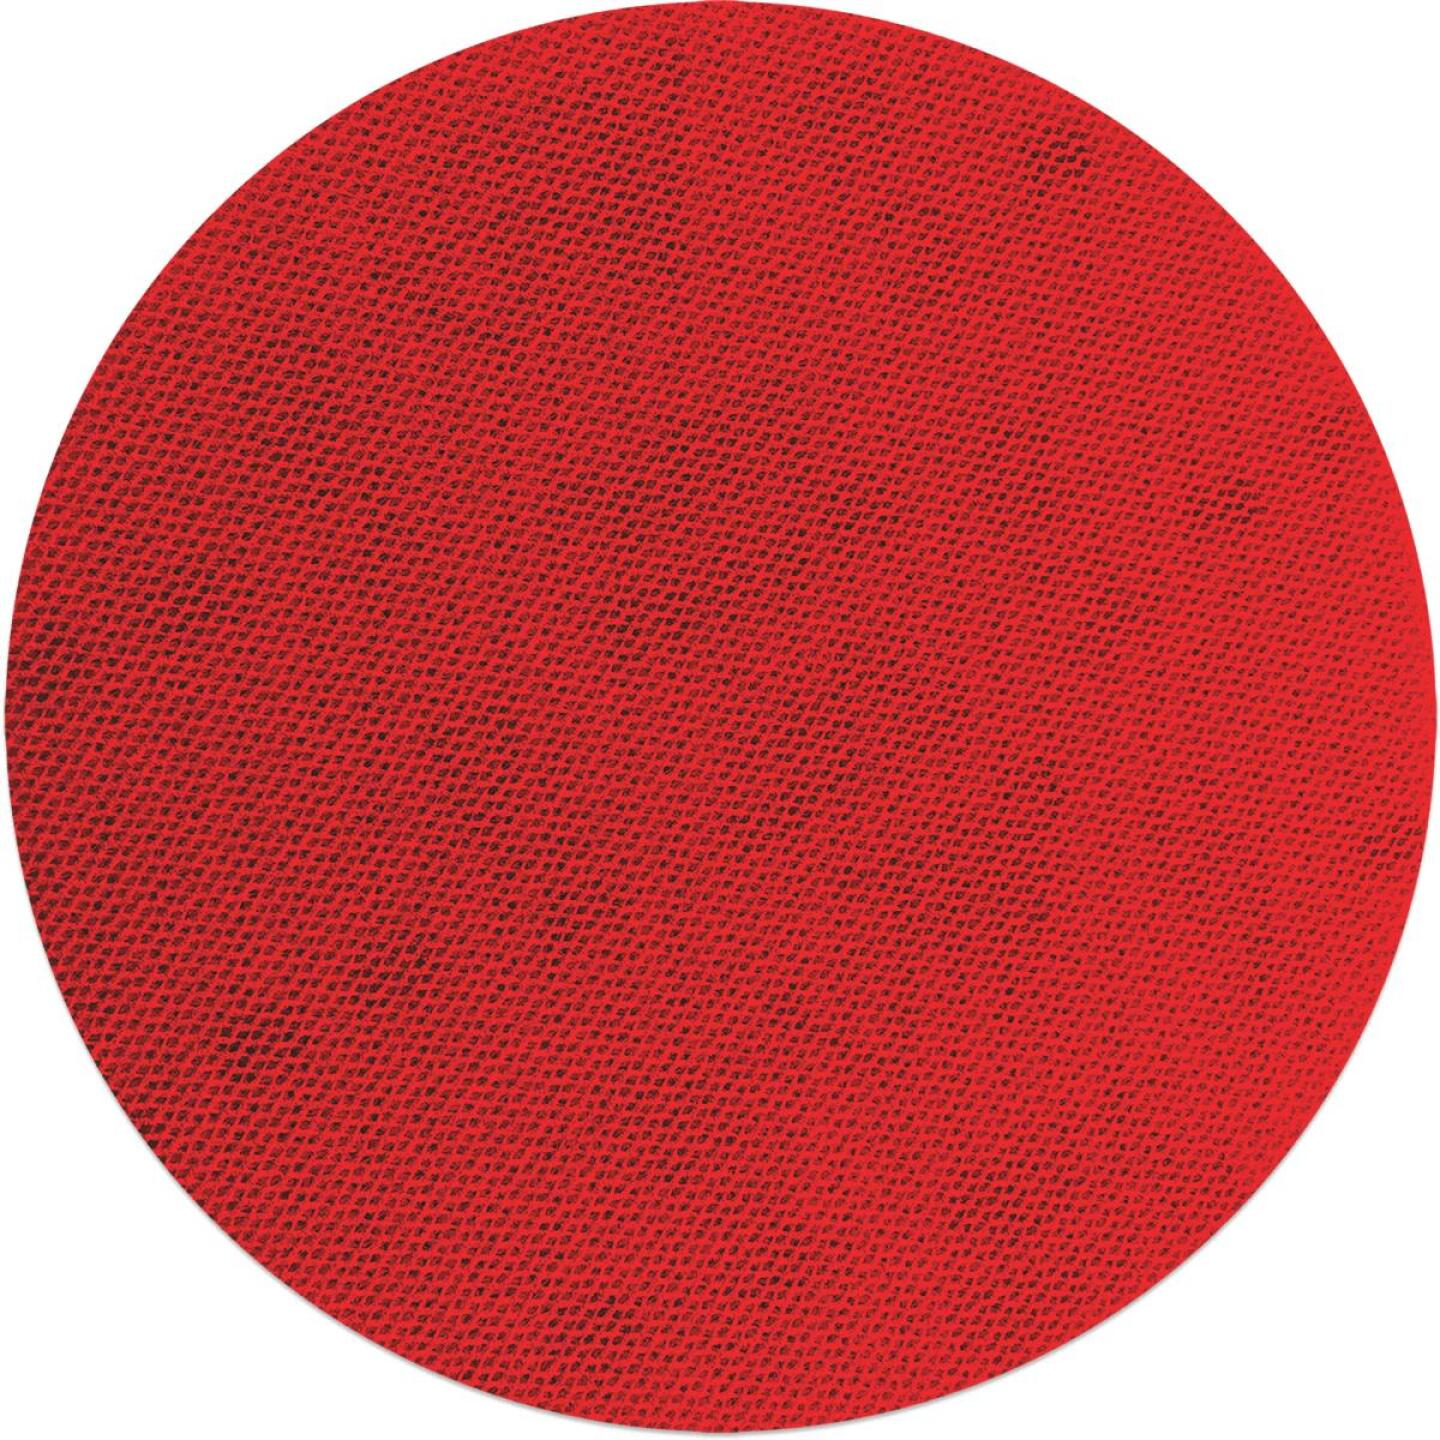 Diablo SandNet 5 In. 400 Grit Sanding Disc with Connection Pad (40-Pack) Image 1